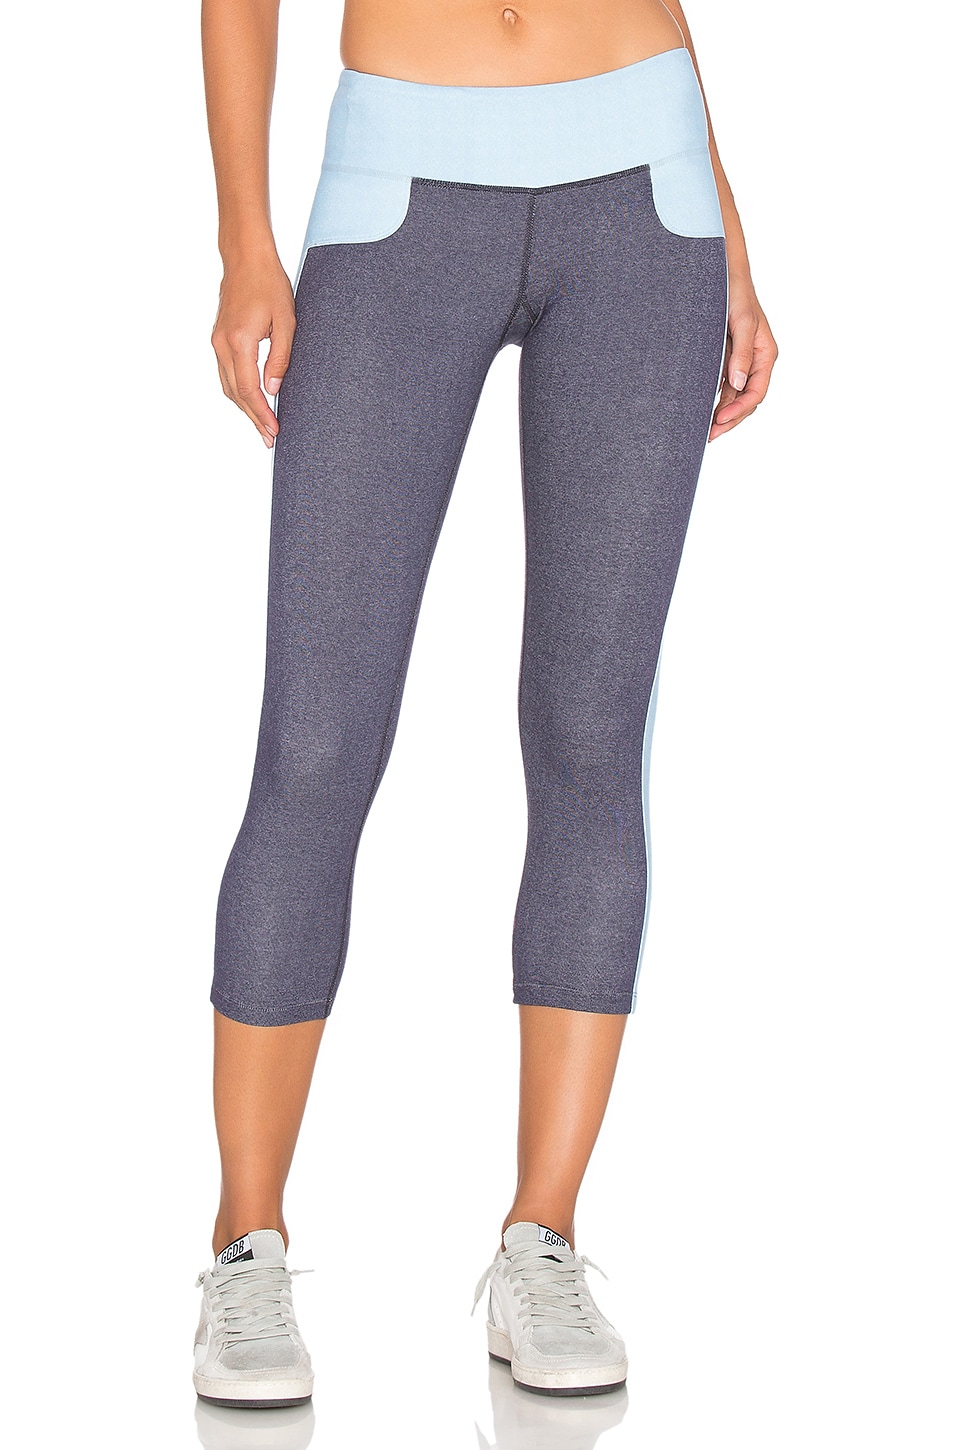 Splits59 Cash Capri in Dark Denim & Light Chambray